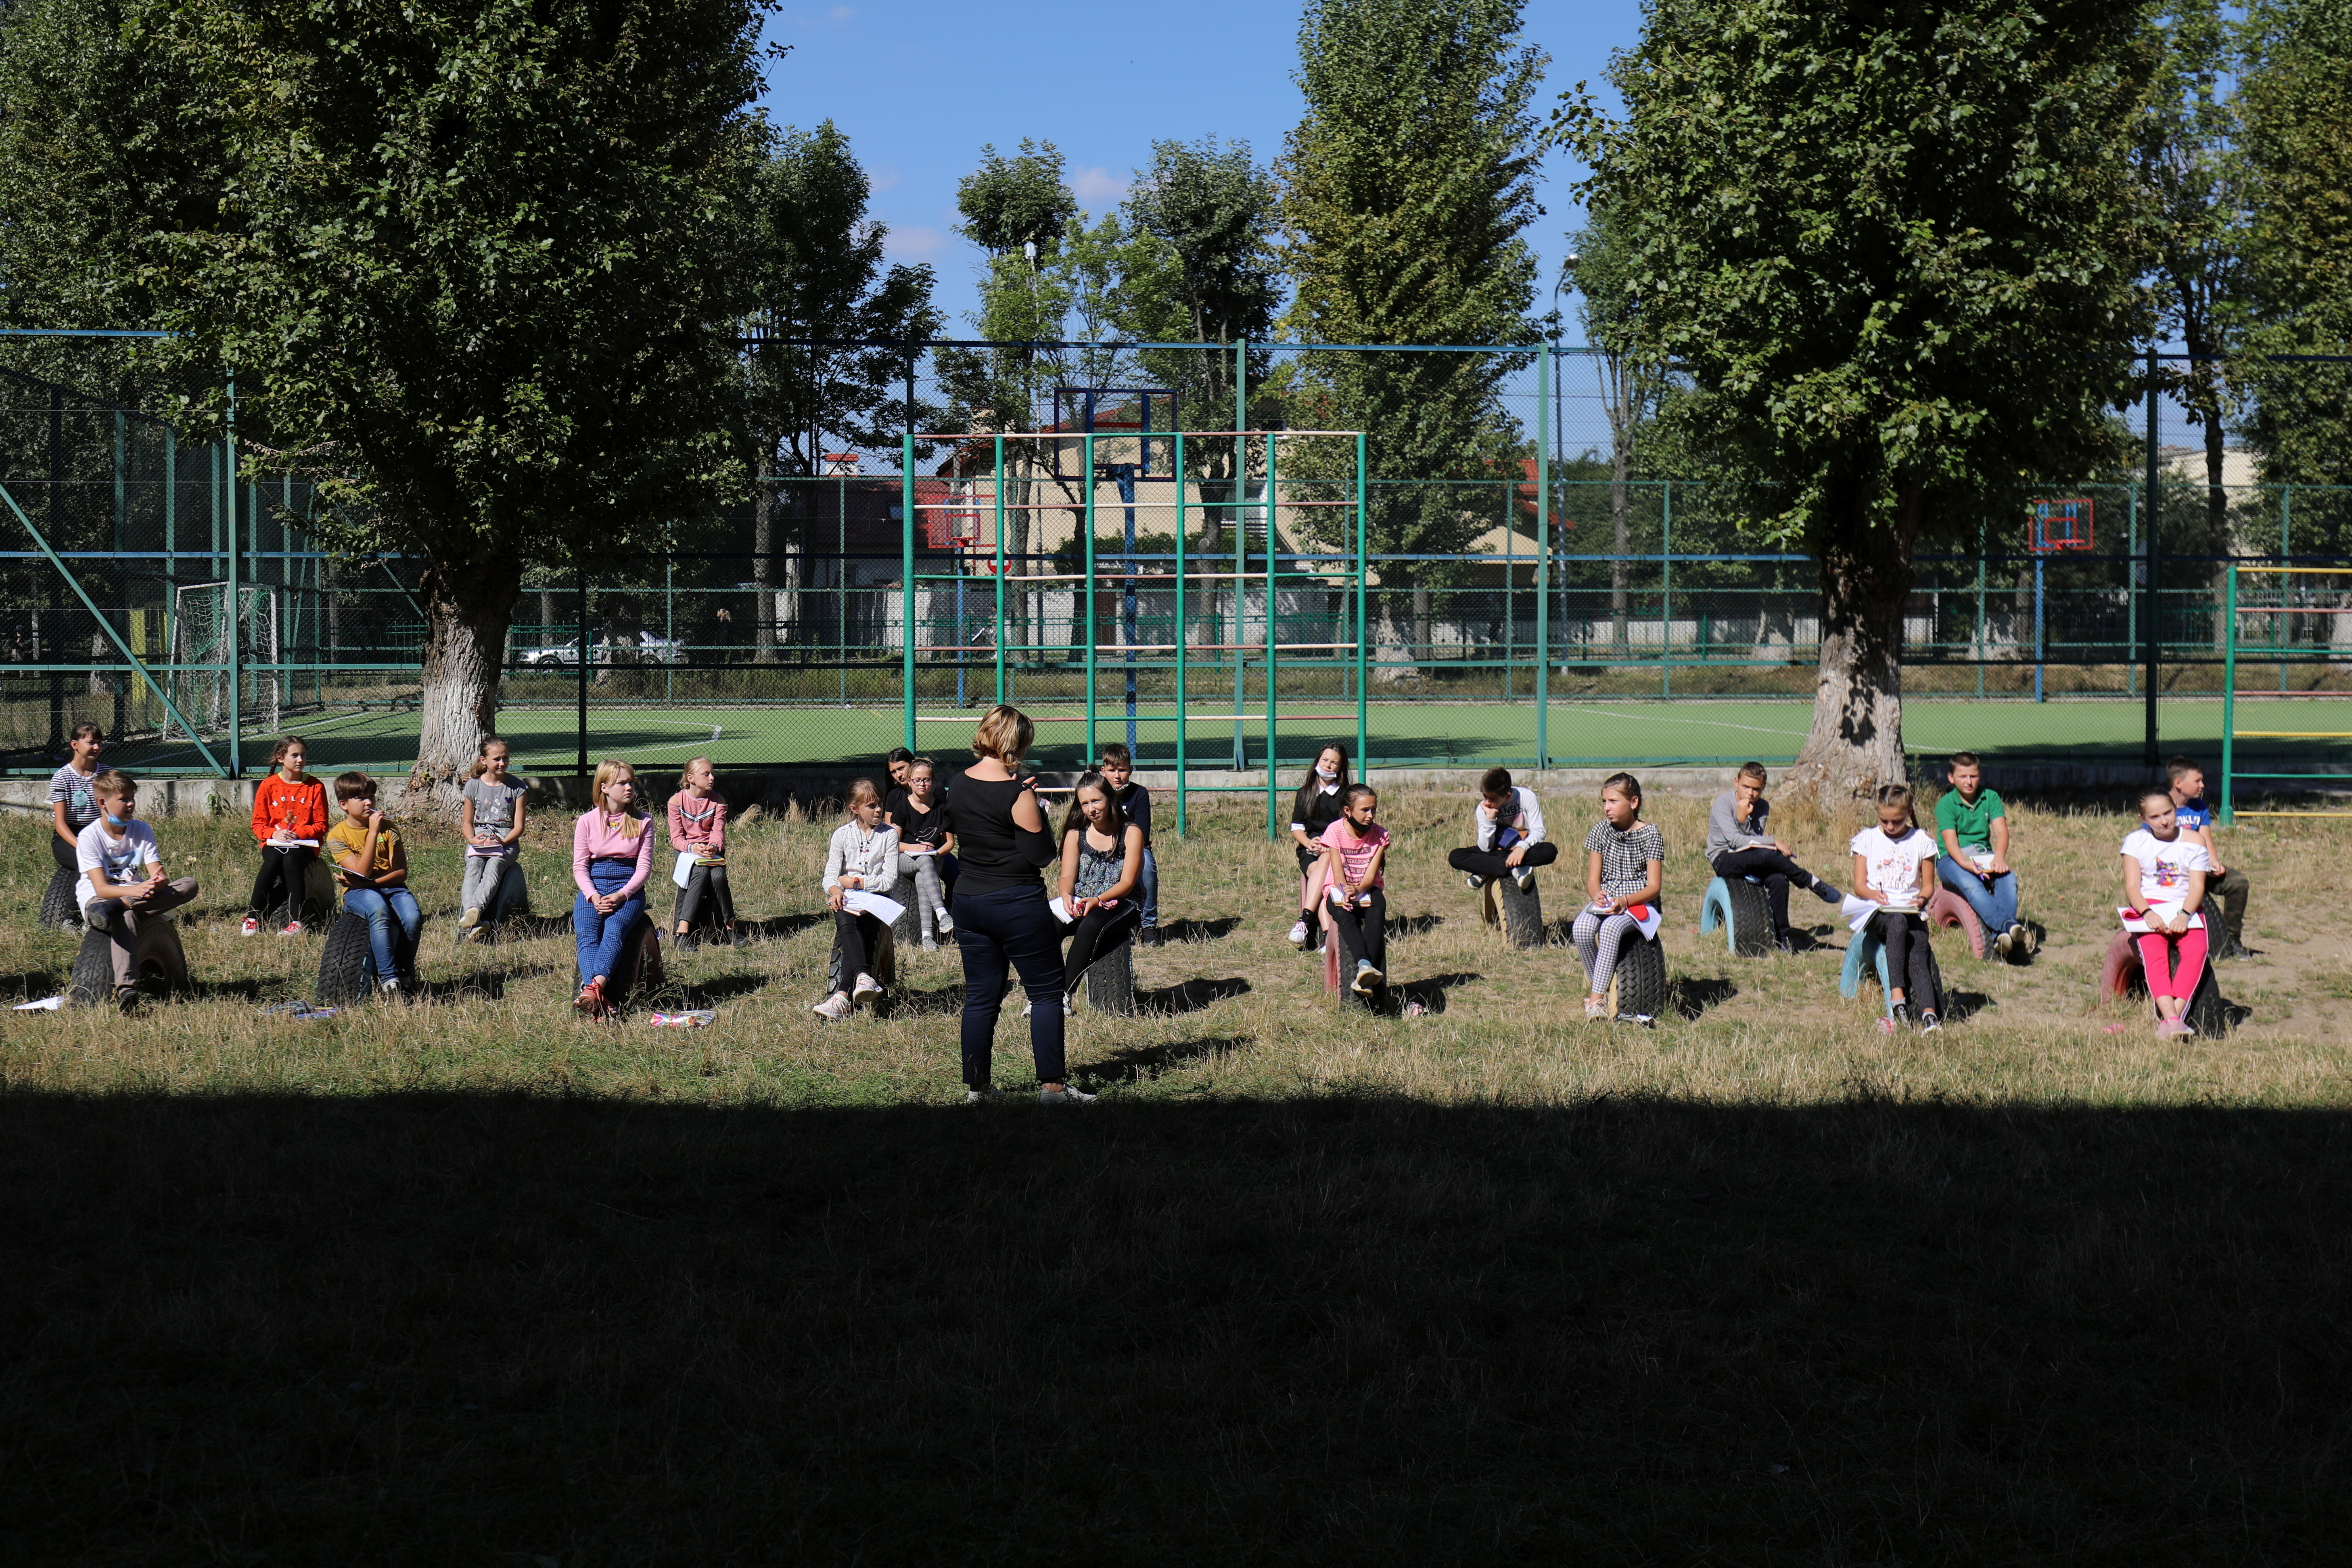 Students attend a geography class at a school in an open-air classroom organised on a playground amid the coronavirus disease (COVID-19) outbreak, in Lviv, Ukraine September 9, 2020.  REUTERS/Roman Baluk